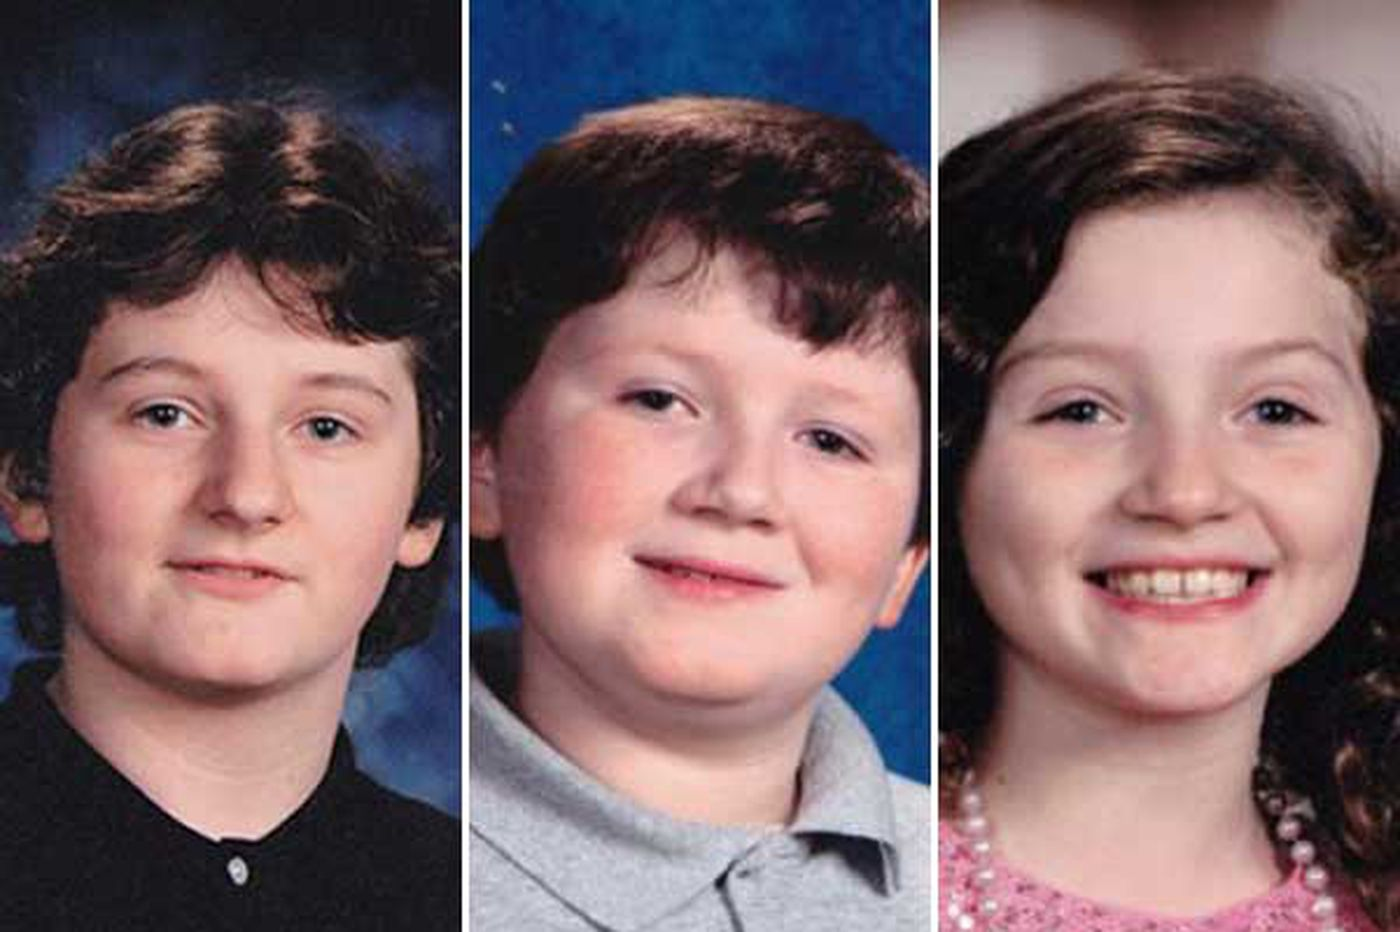 Funeral set for children slain in Tabernacle